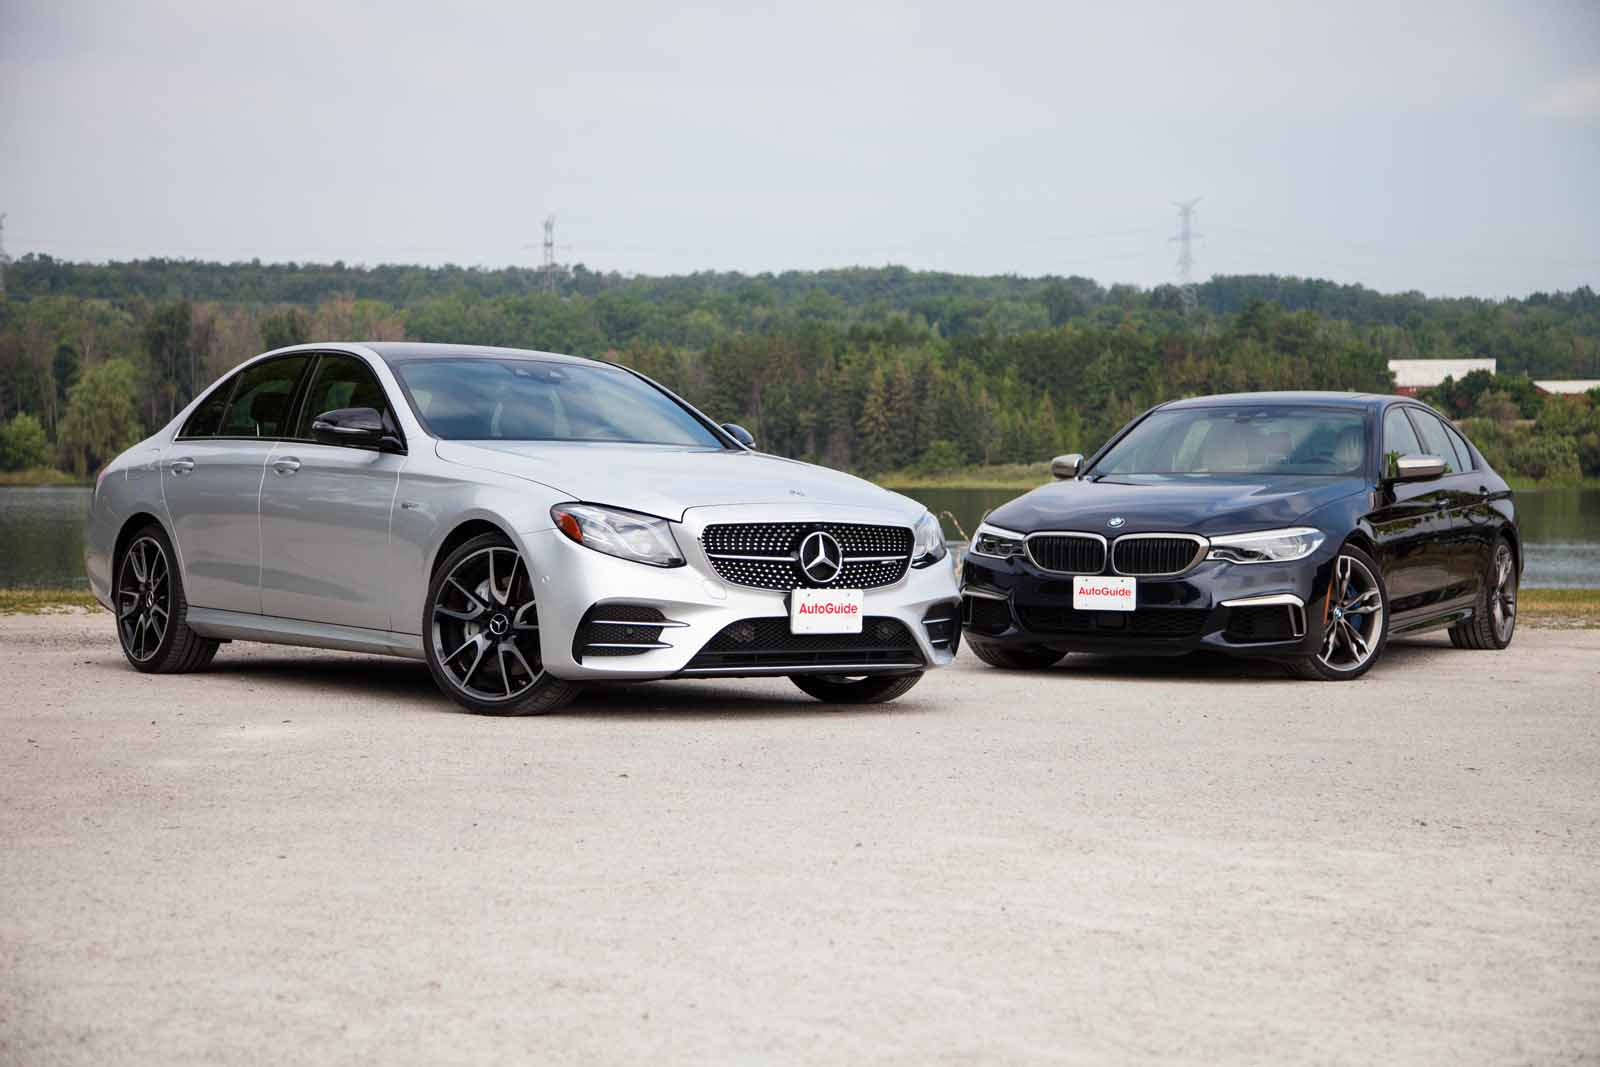 2017 mercedes benz e43 amg vs bmw m550i comparison for Bmw mercedes benz